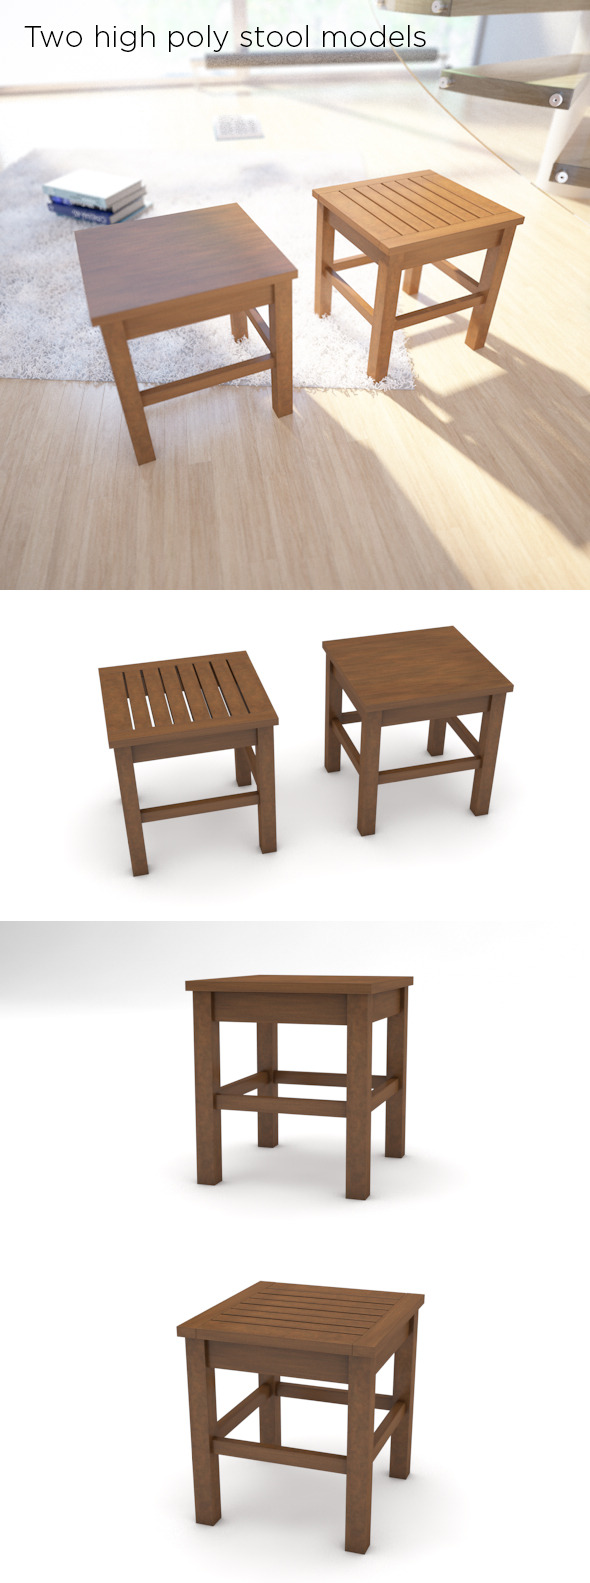 3DOcean Two high poly stool models 9079289